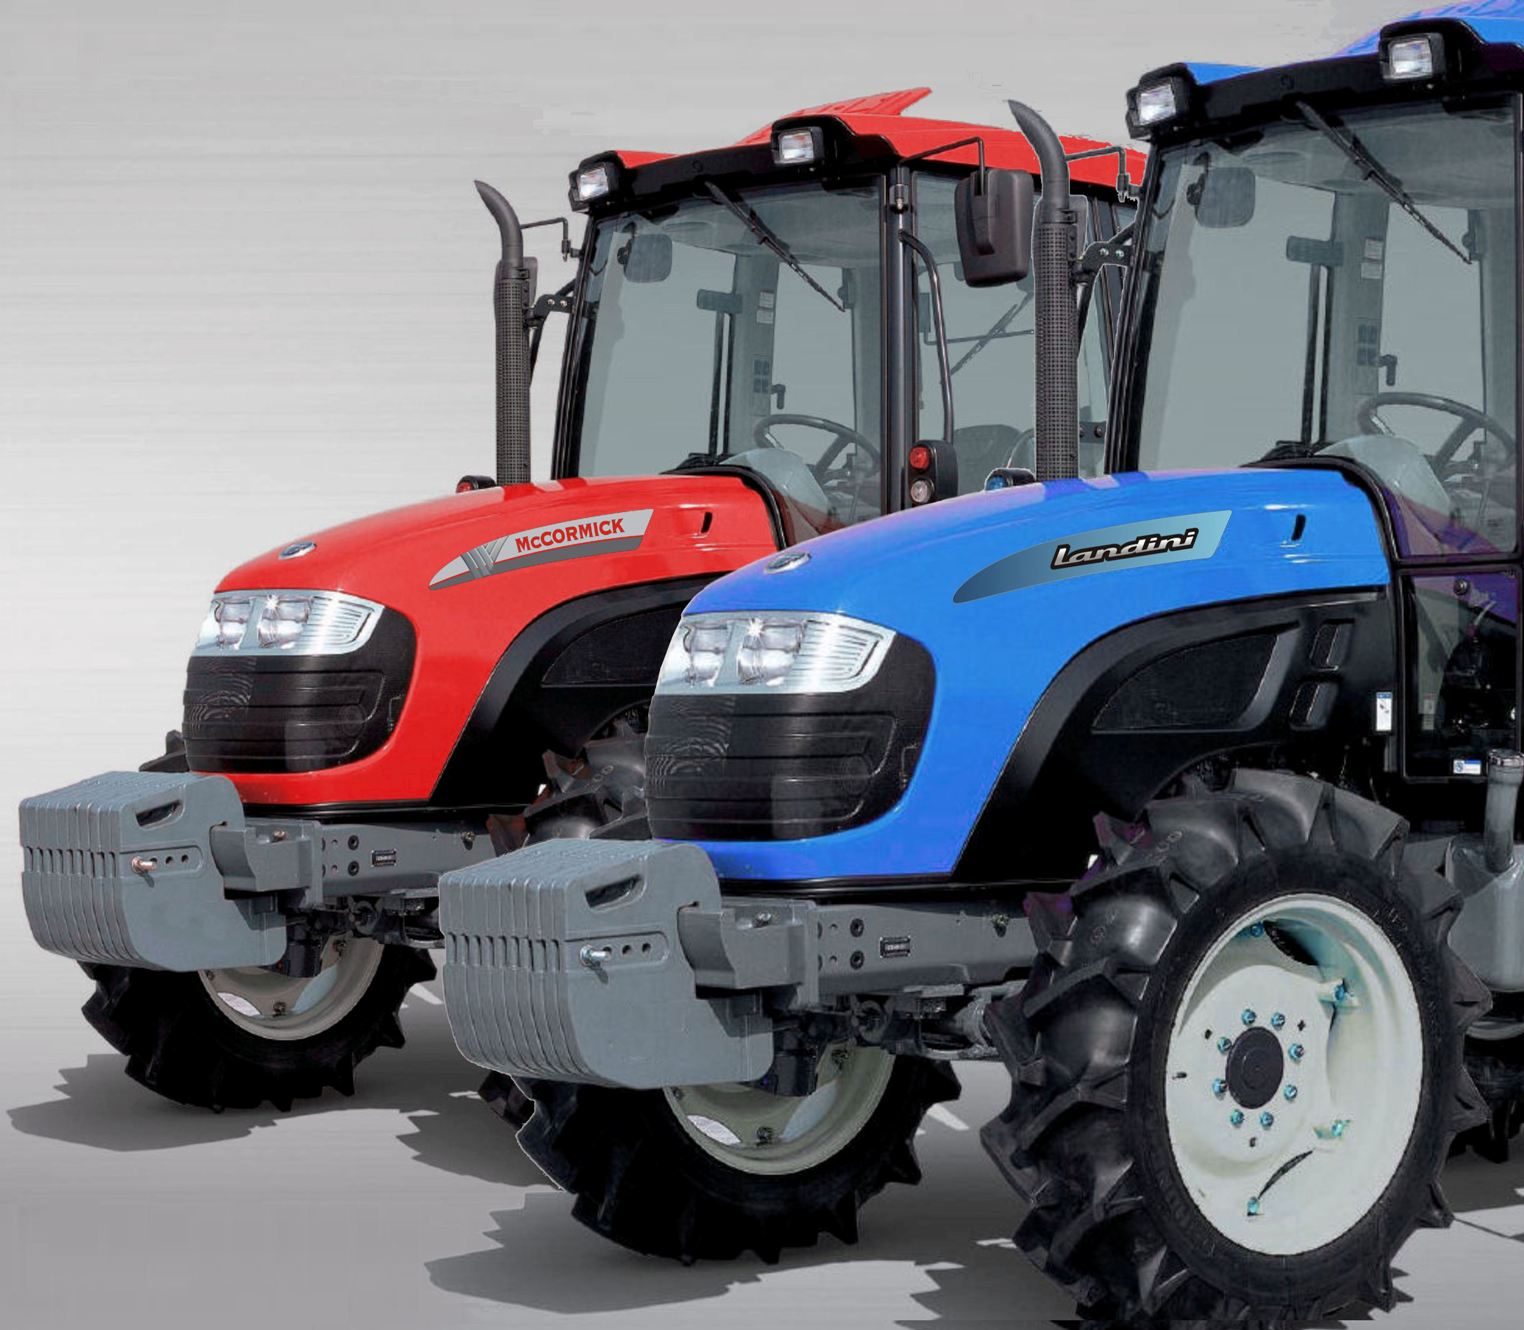 A new range of compact and farm utility tractors being sourced by ARGO Tractors from Daedong of Korea will be distributed in Landini and McCormick colours by AgriArgo UK.